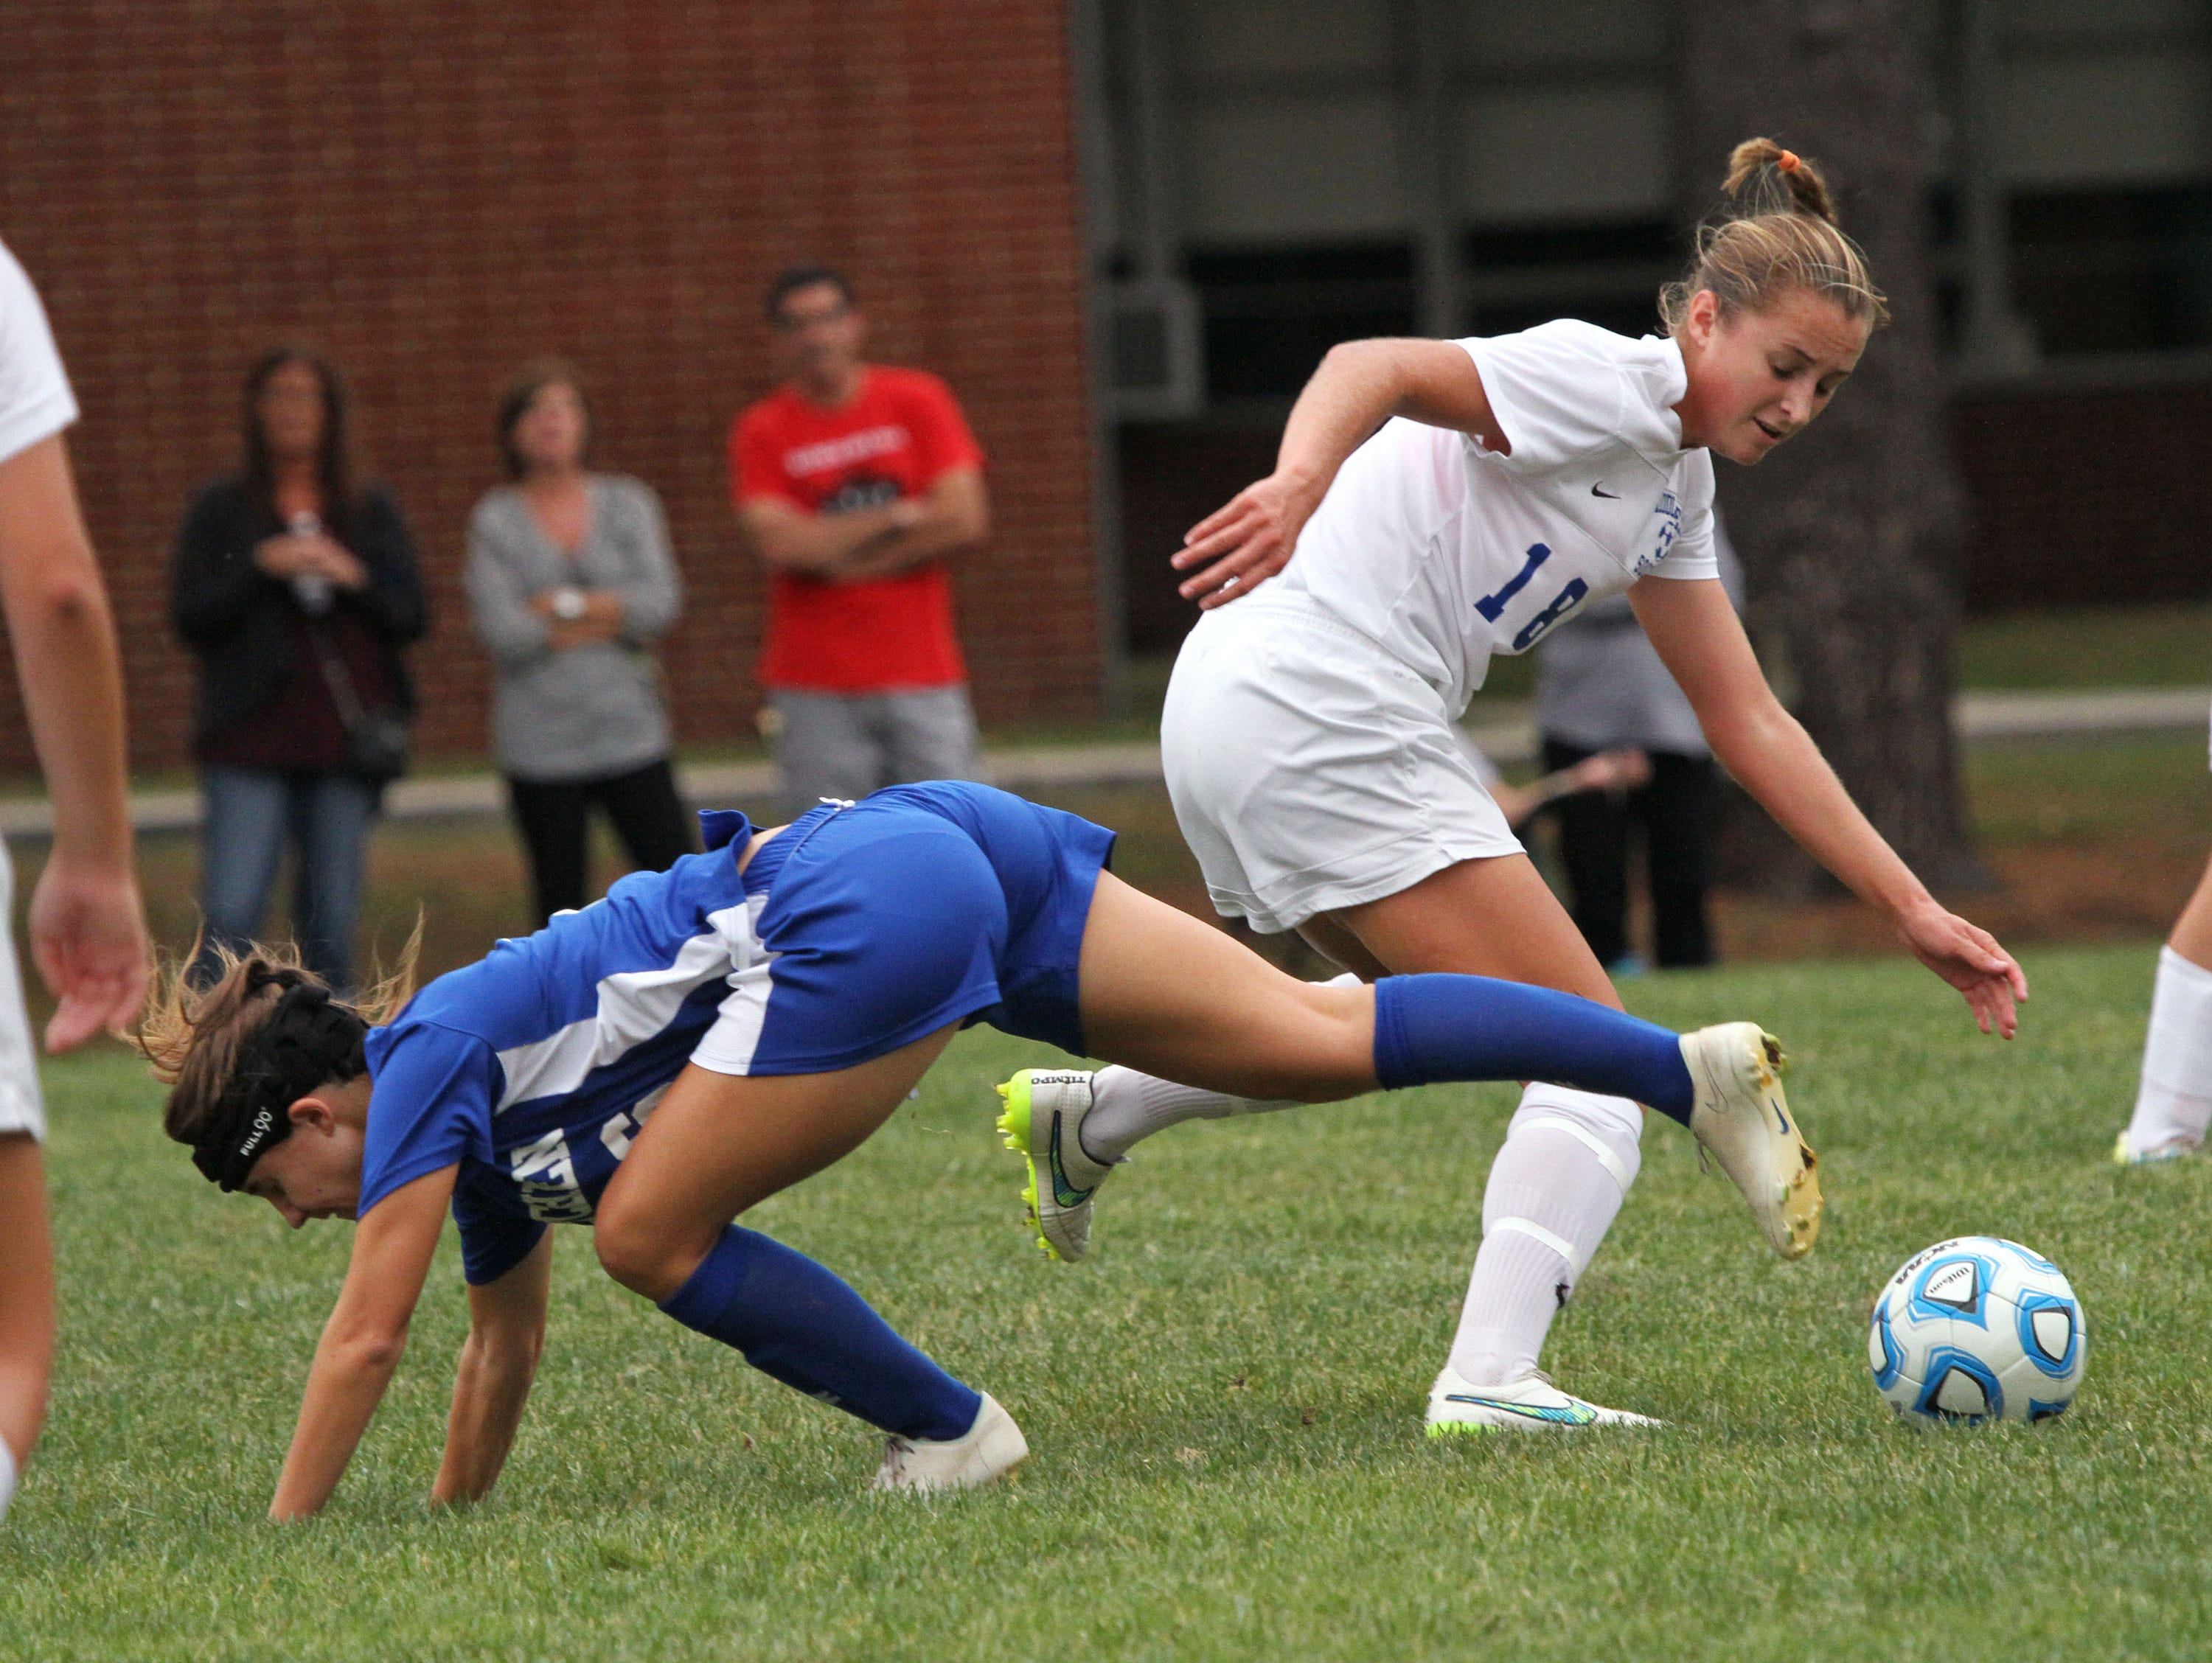 Mackenzie Meixner, right, of Middlesex moves the ball past Metuchen's Carly Taylor in girls soccer game at Middlesex.